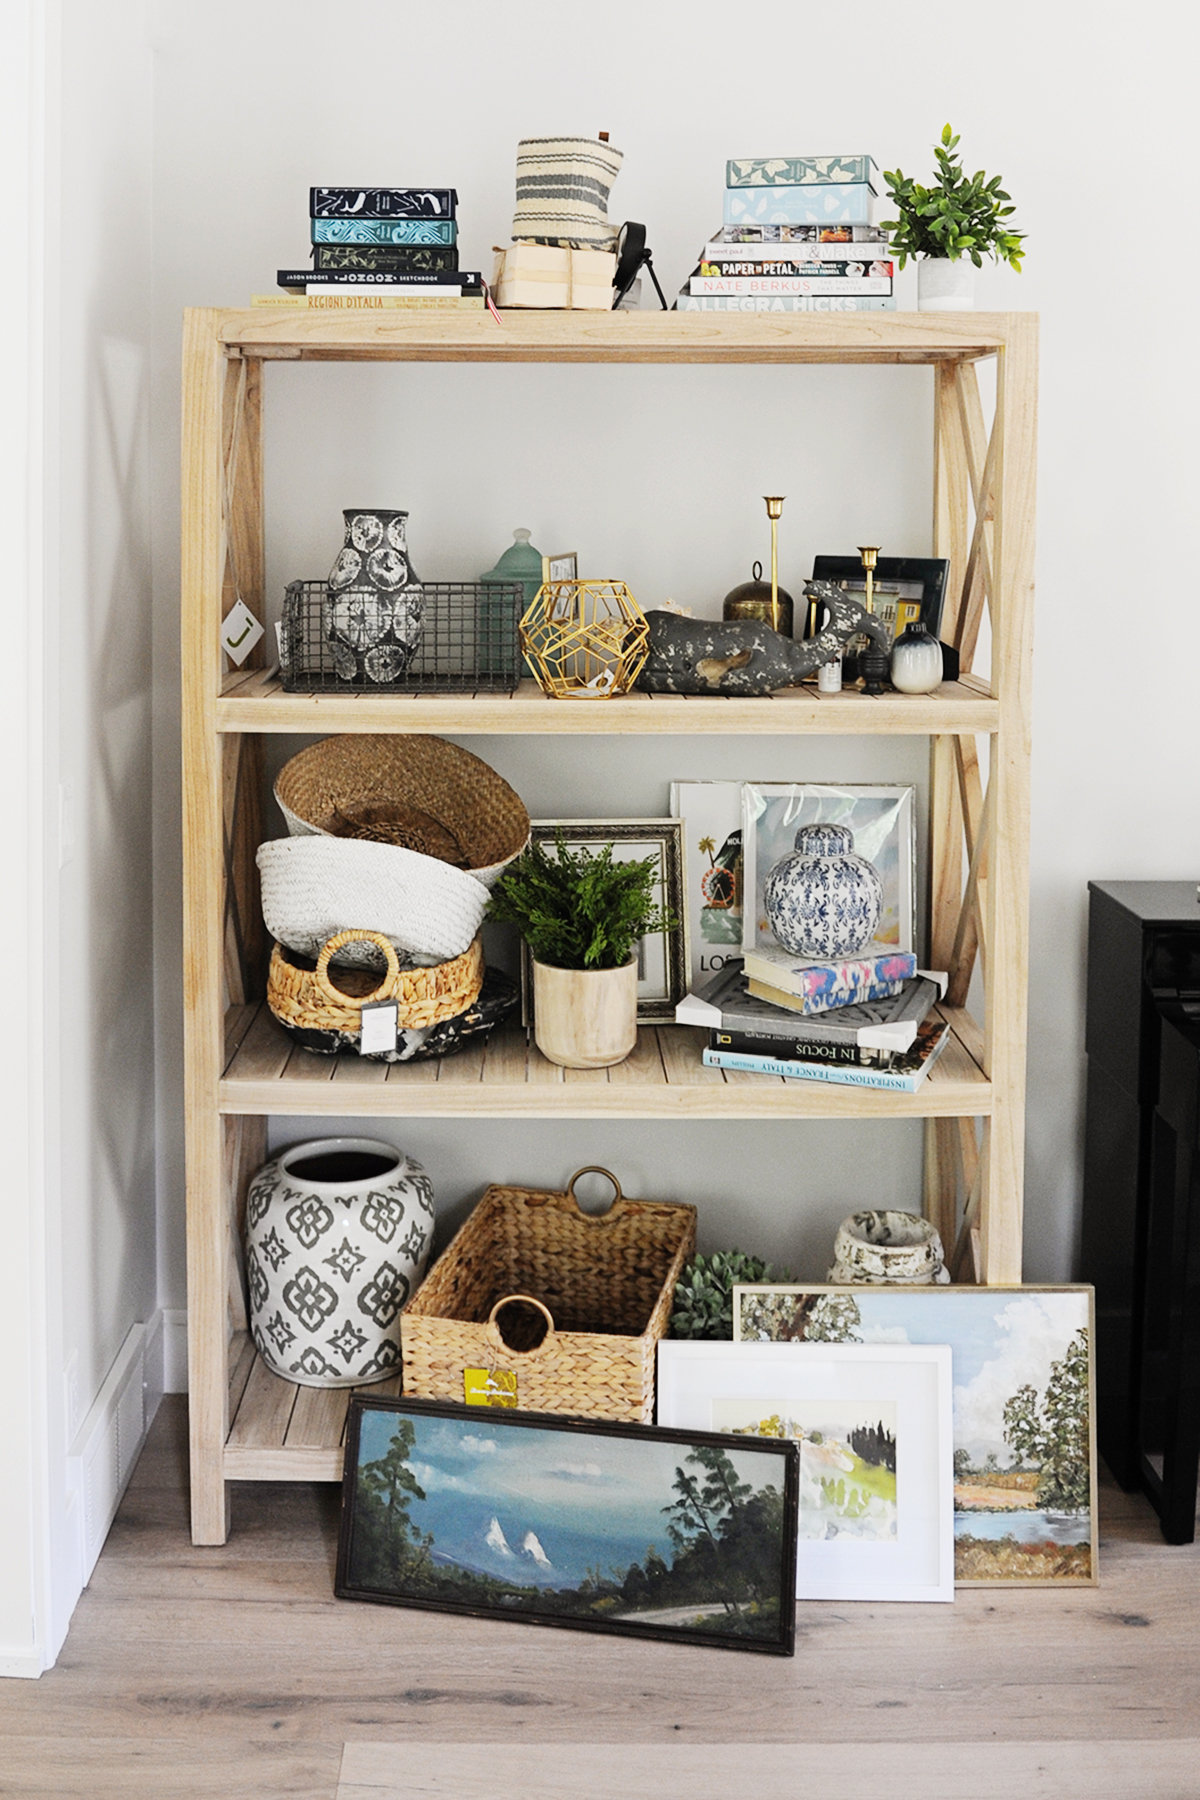 How to decorate shelves